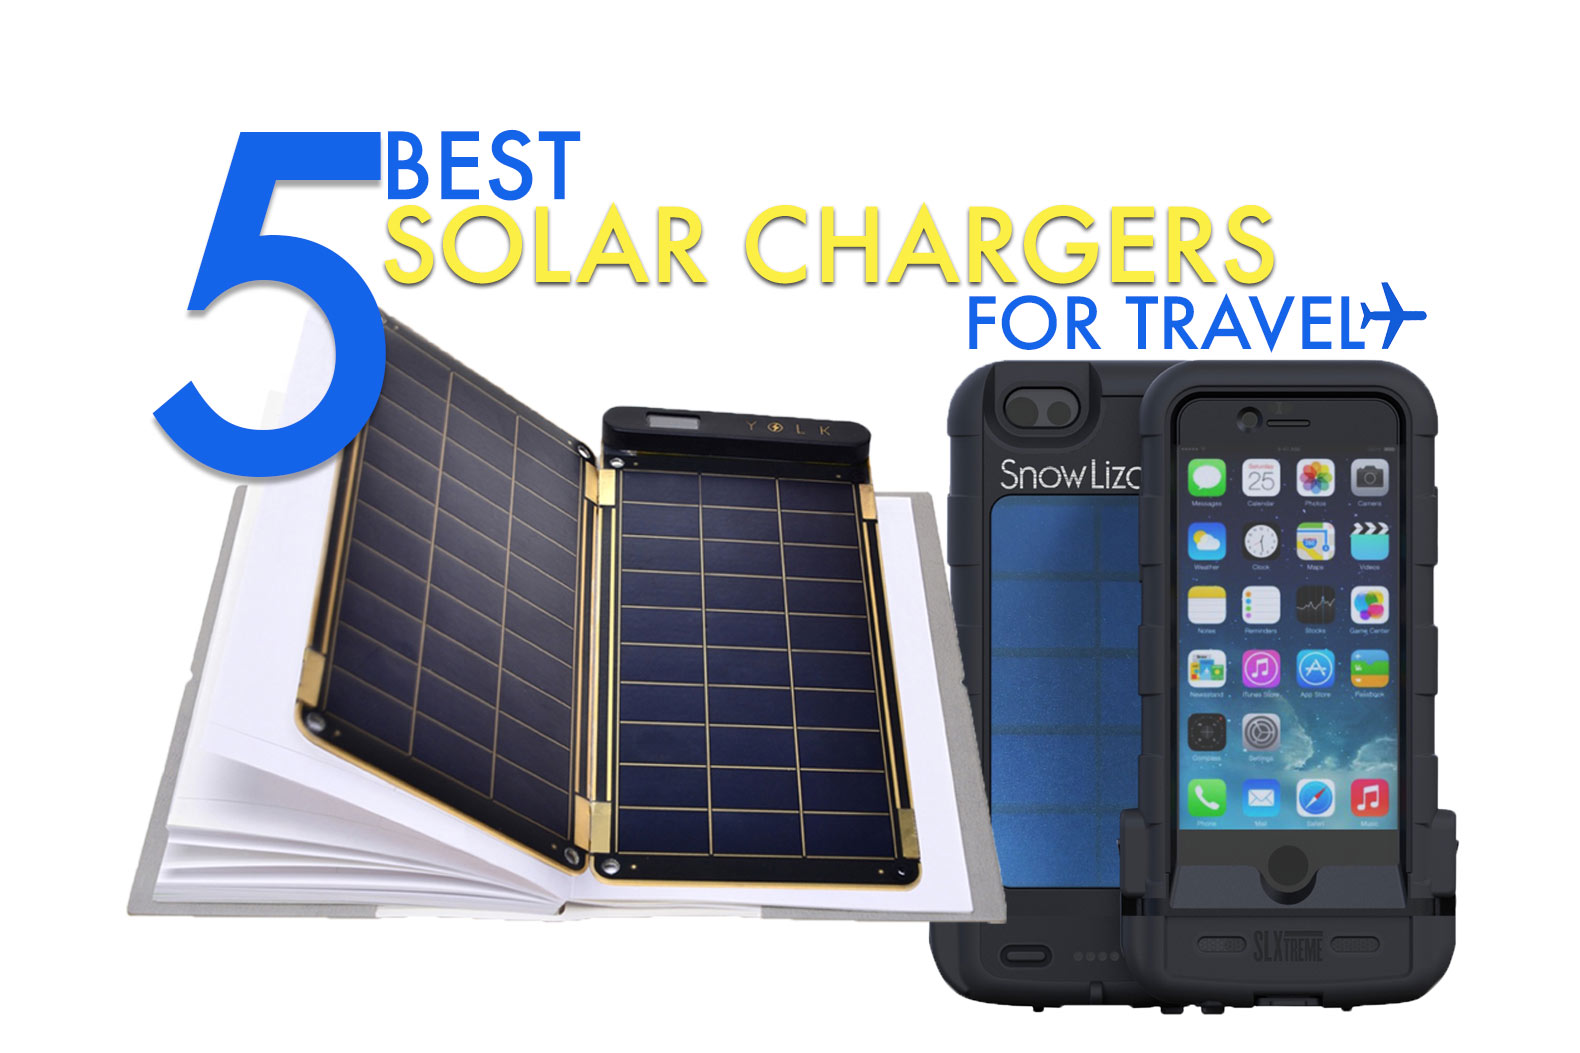 The 5 best solar chargers for every kind of traveler